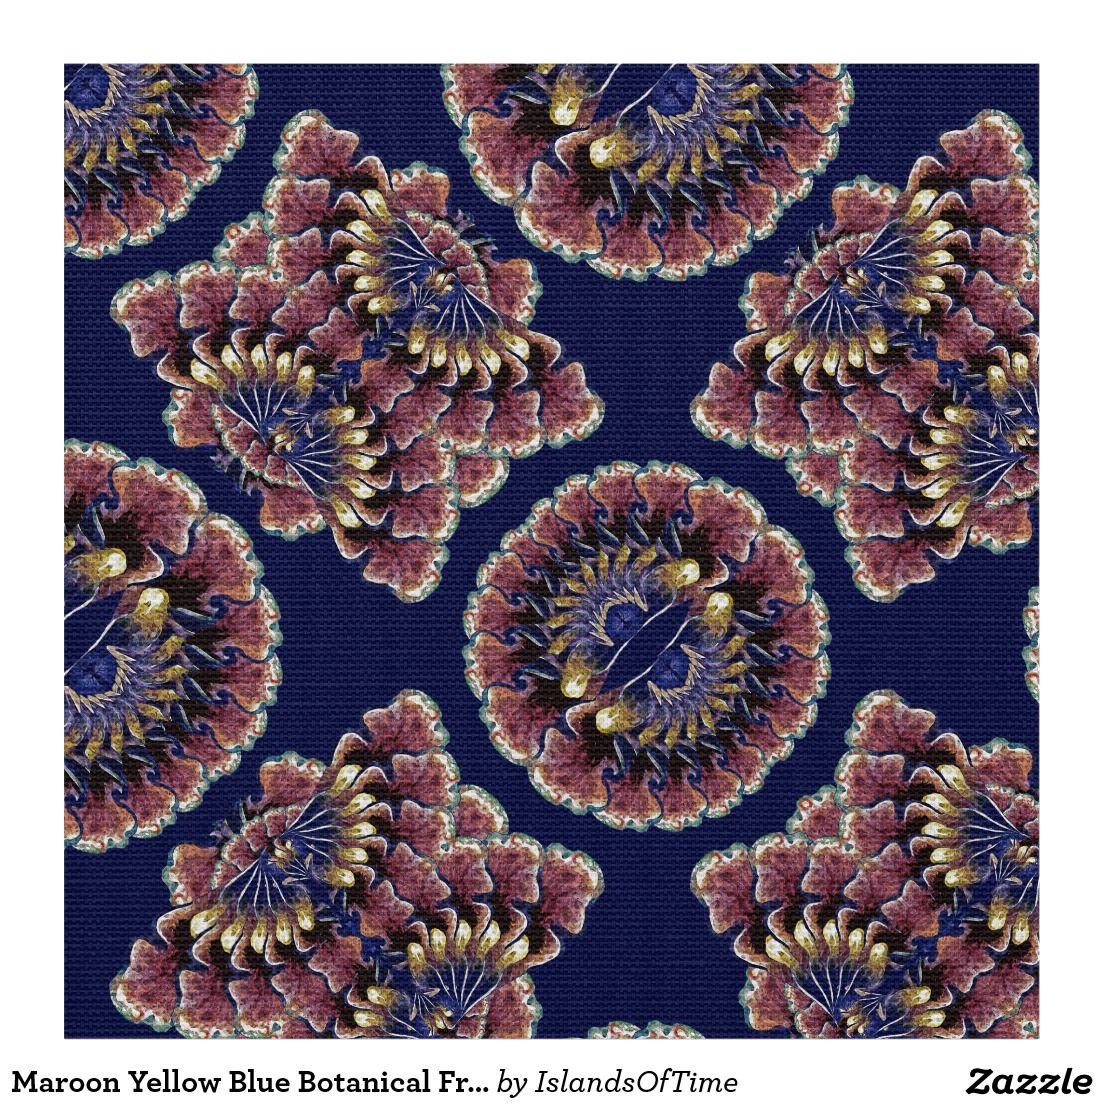 Maroon Yellow Blue Botanical Fractal Art Pattern Fabric  Lovely fabric design. Choose from 7 types of fabric. Order only the yards & widths you need!